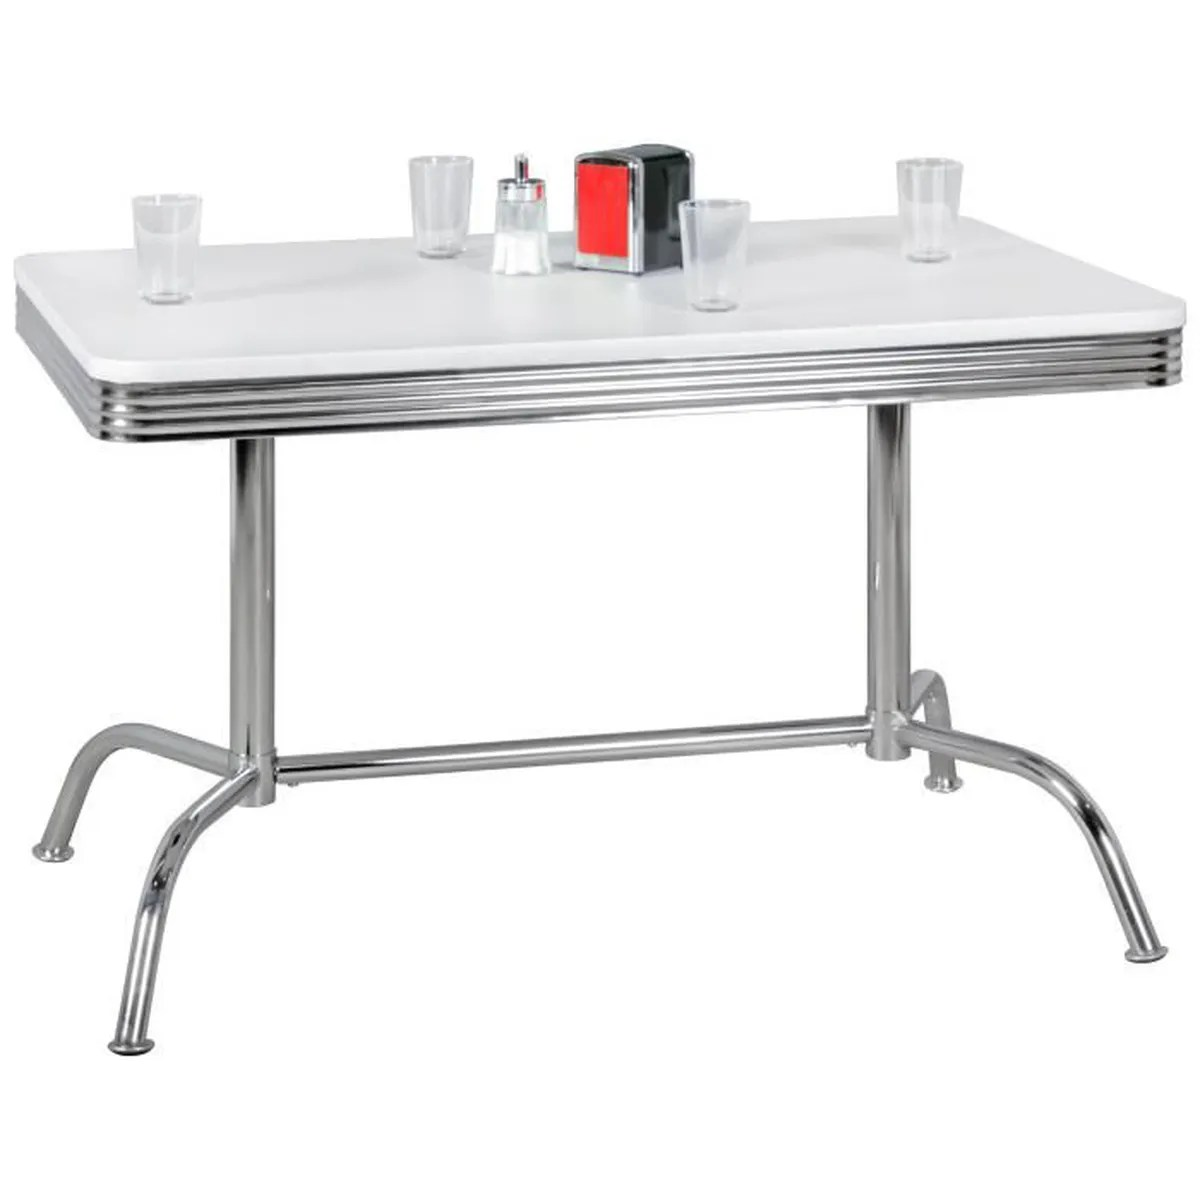 Table Bistrot Aluminium Wohnling Table à Manger Elvis 120 Cm American Dine